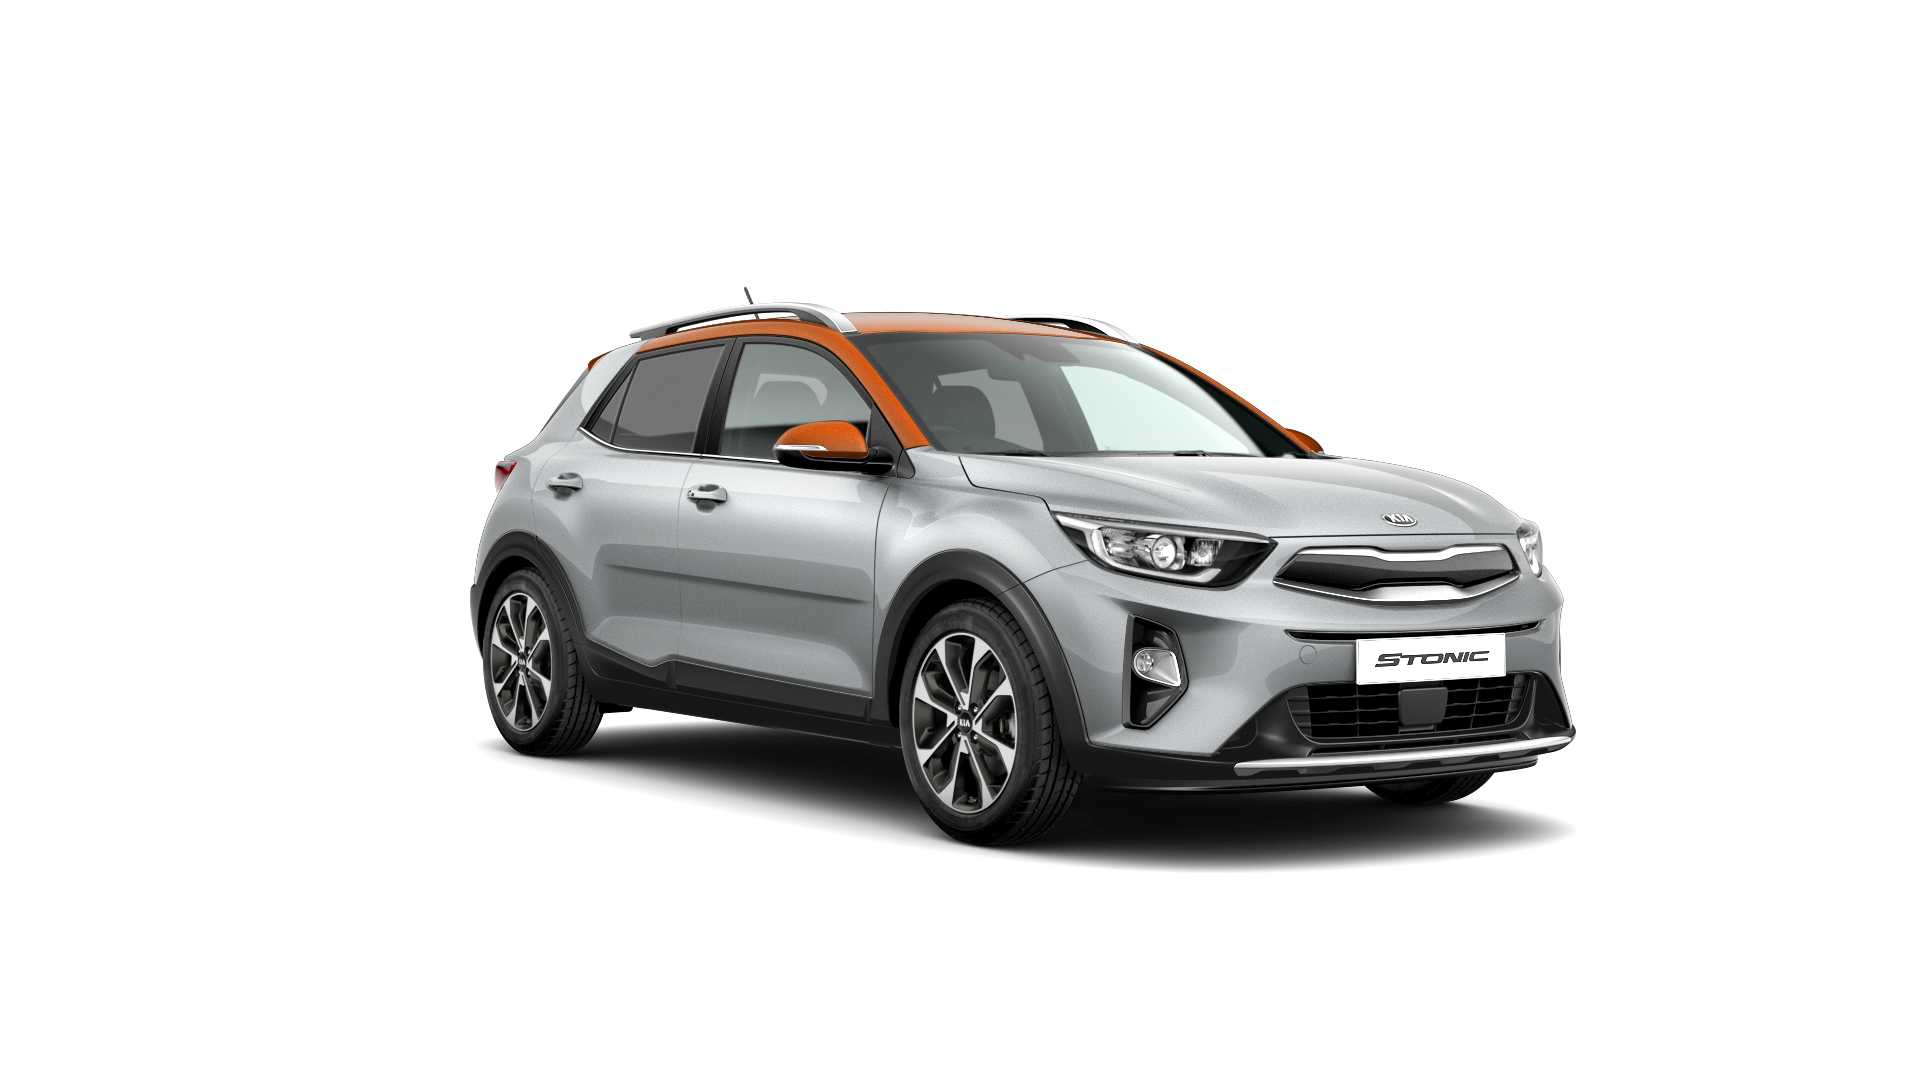 Kia Stonic First Edition - Satin Silver / Orange